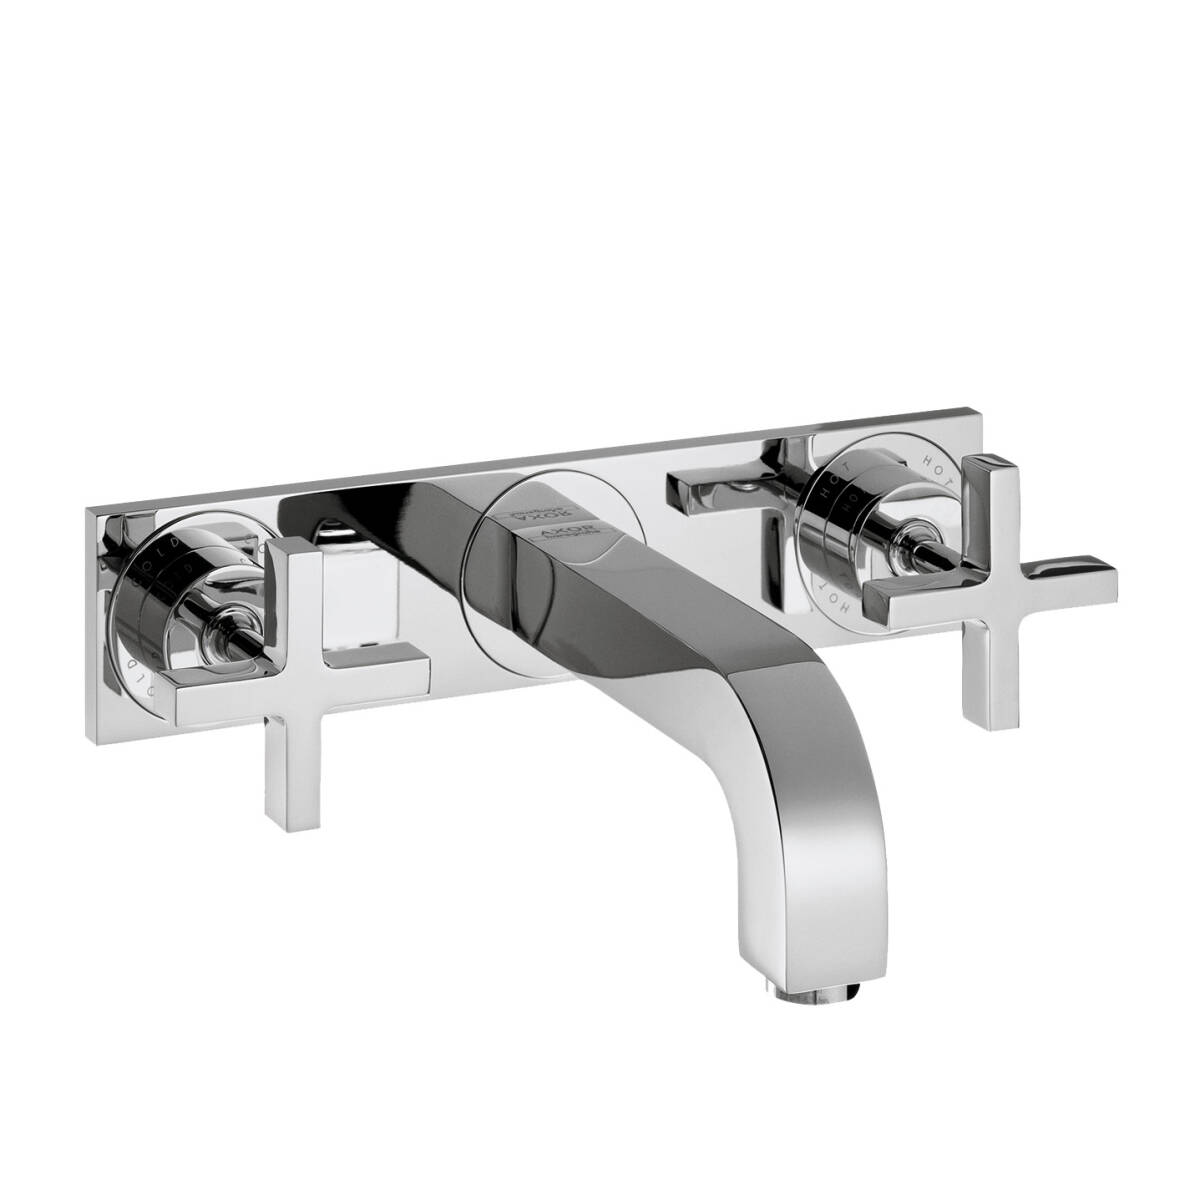 3-hole basin mixer for concealed installation wall-mounted with spout 226 mm, cross handles and plate, Chrome, 39144000